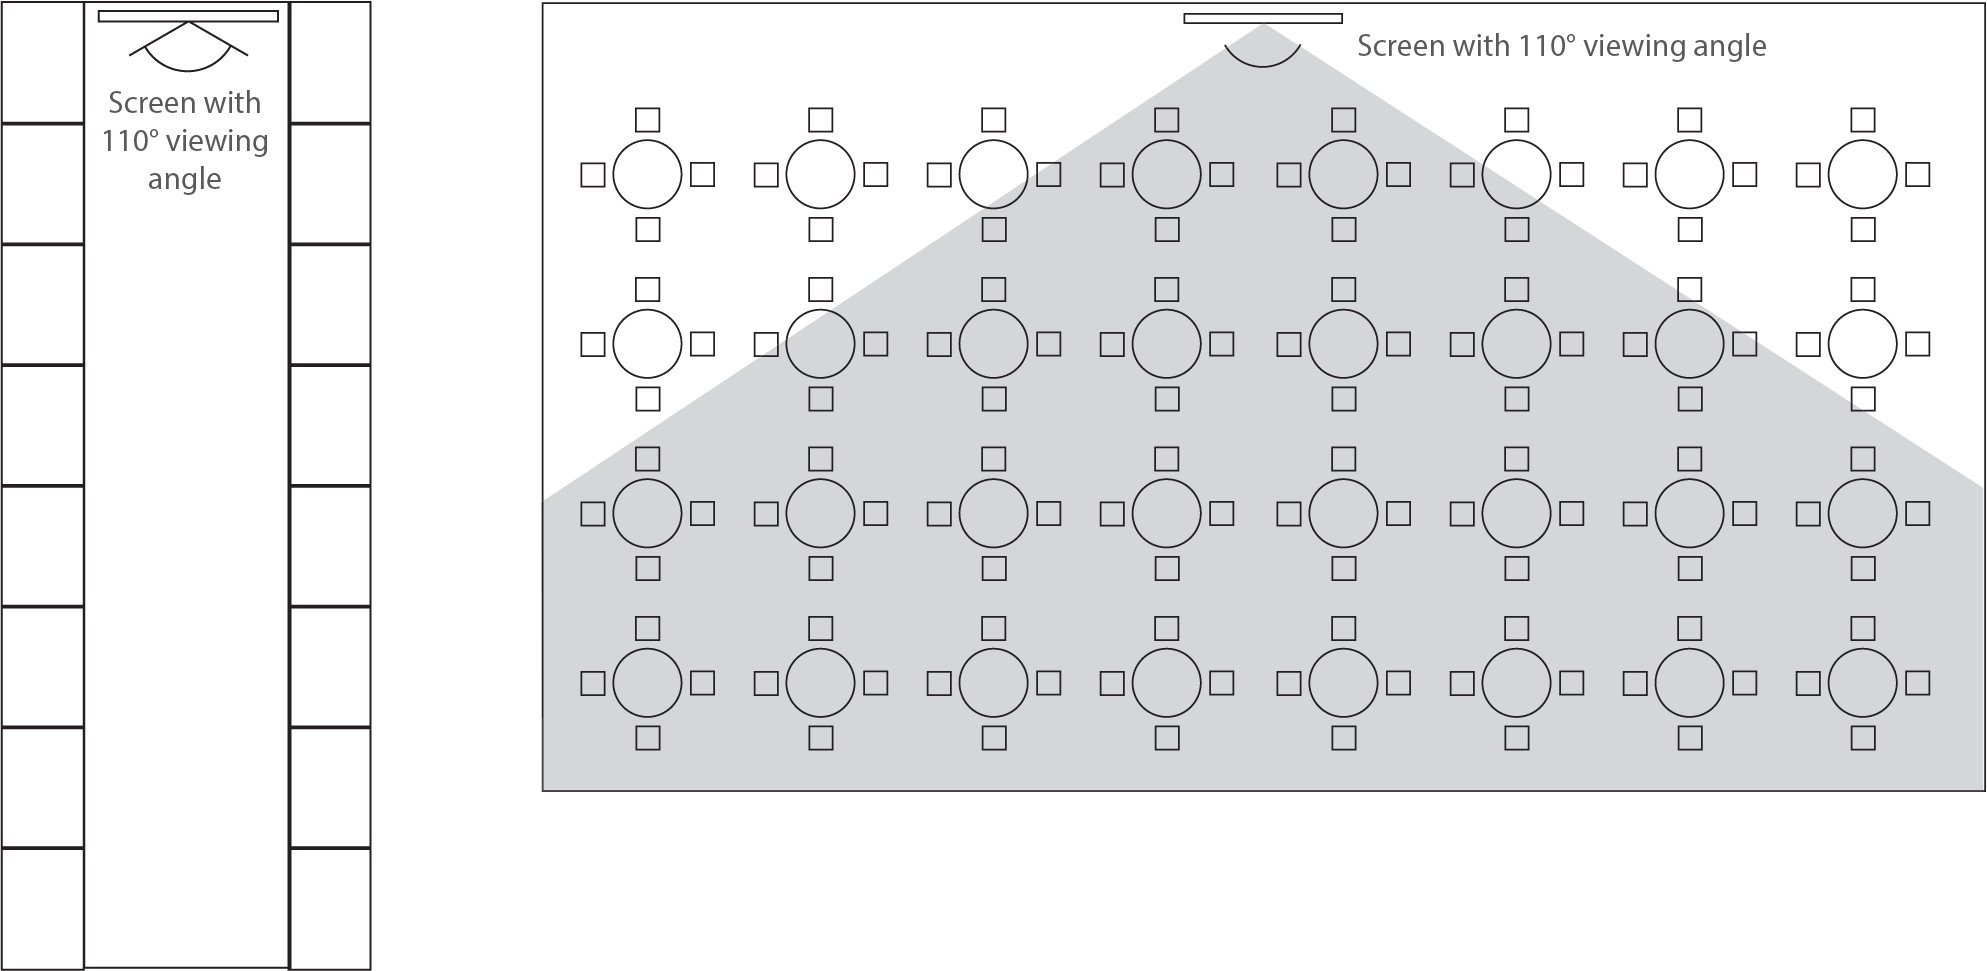 screen with 110° viewing angle schema